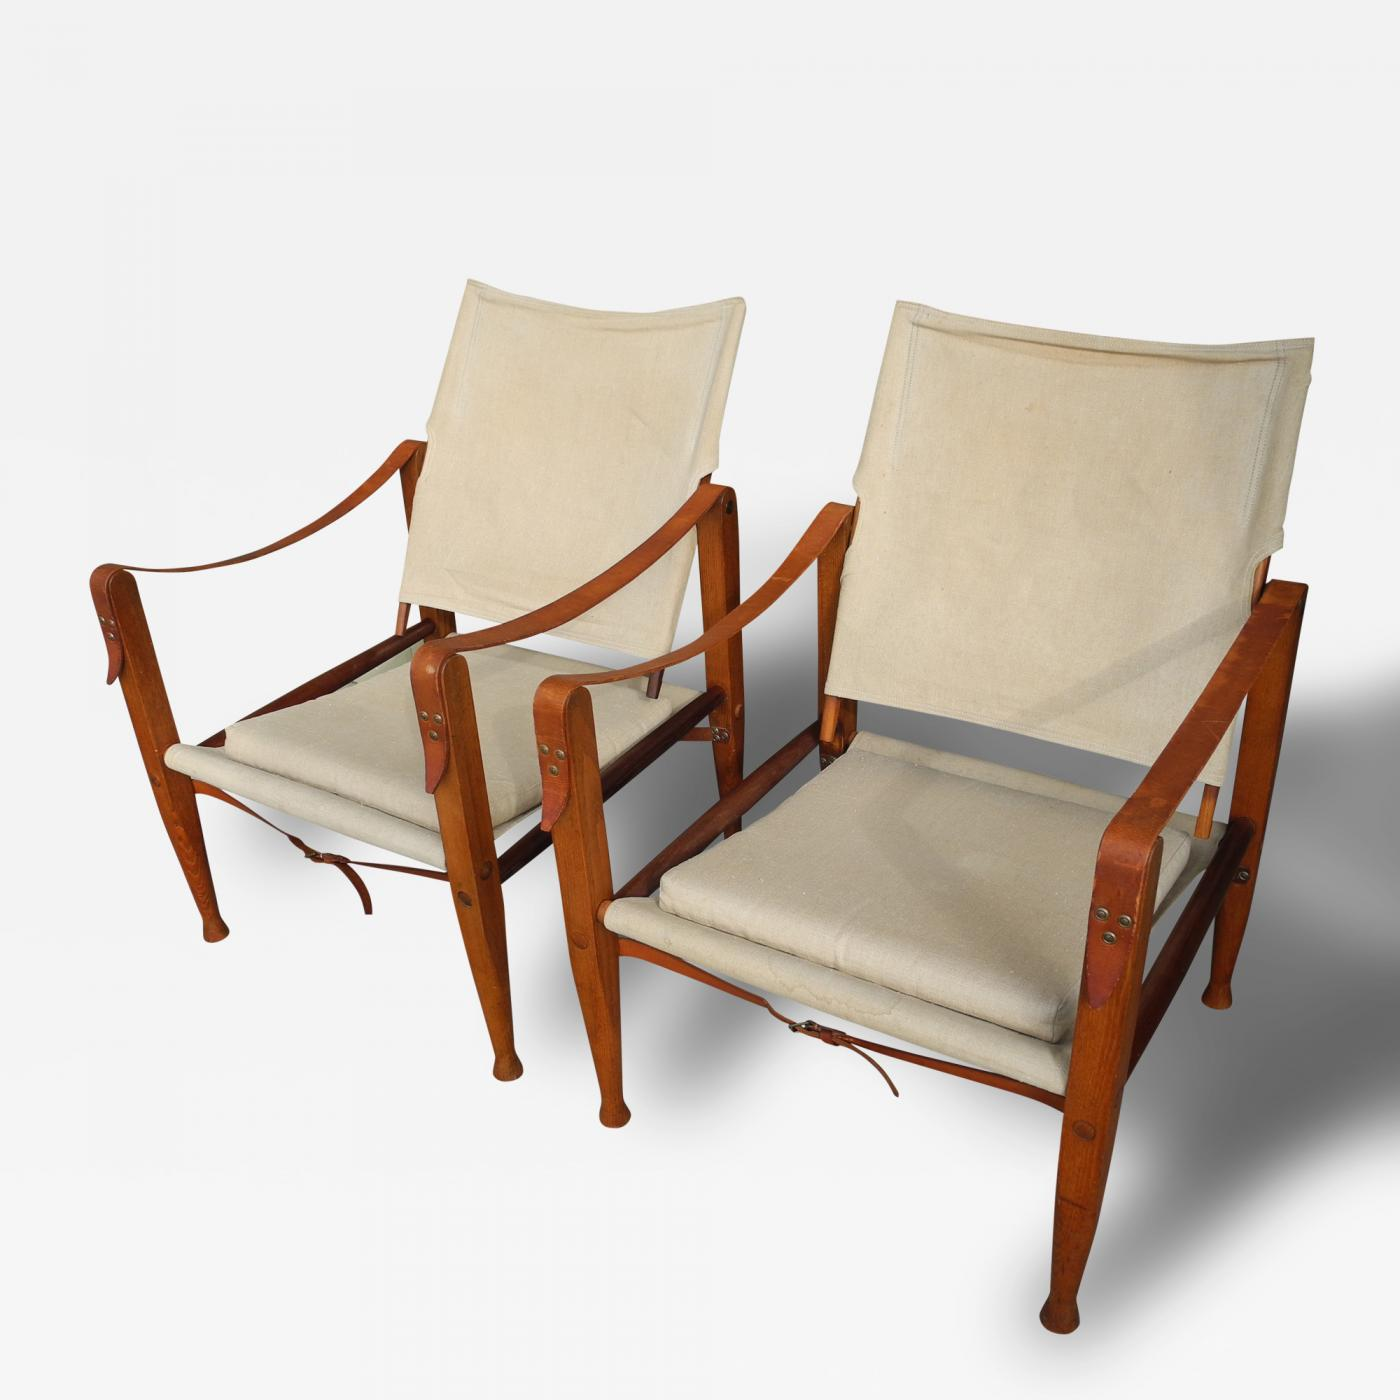 Kaare Klint Danish Modern Portable Safari Chairs by Kaare Klint